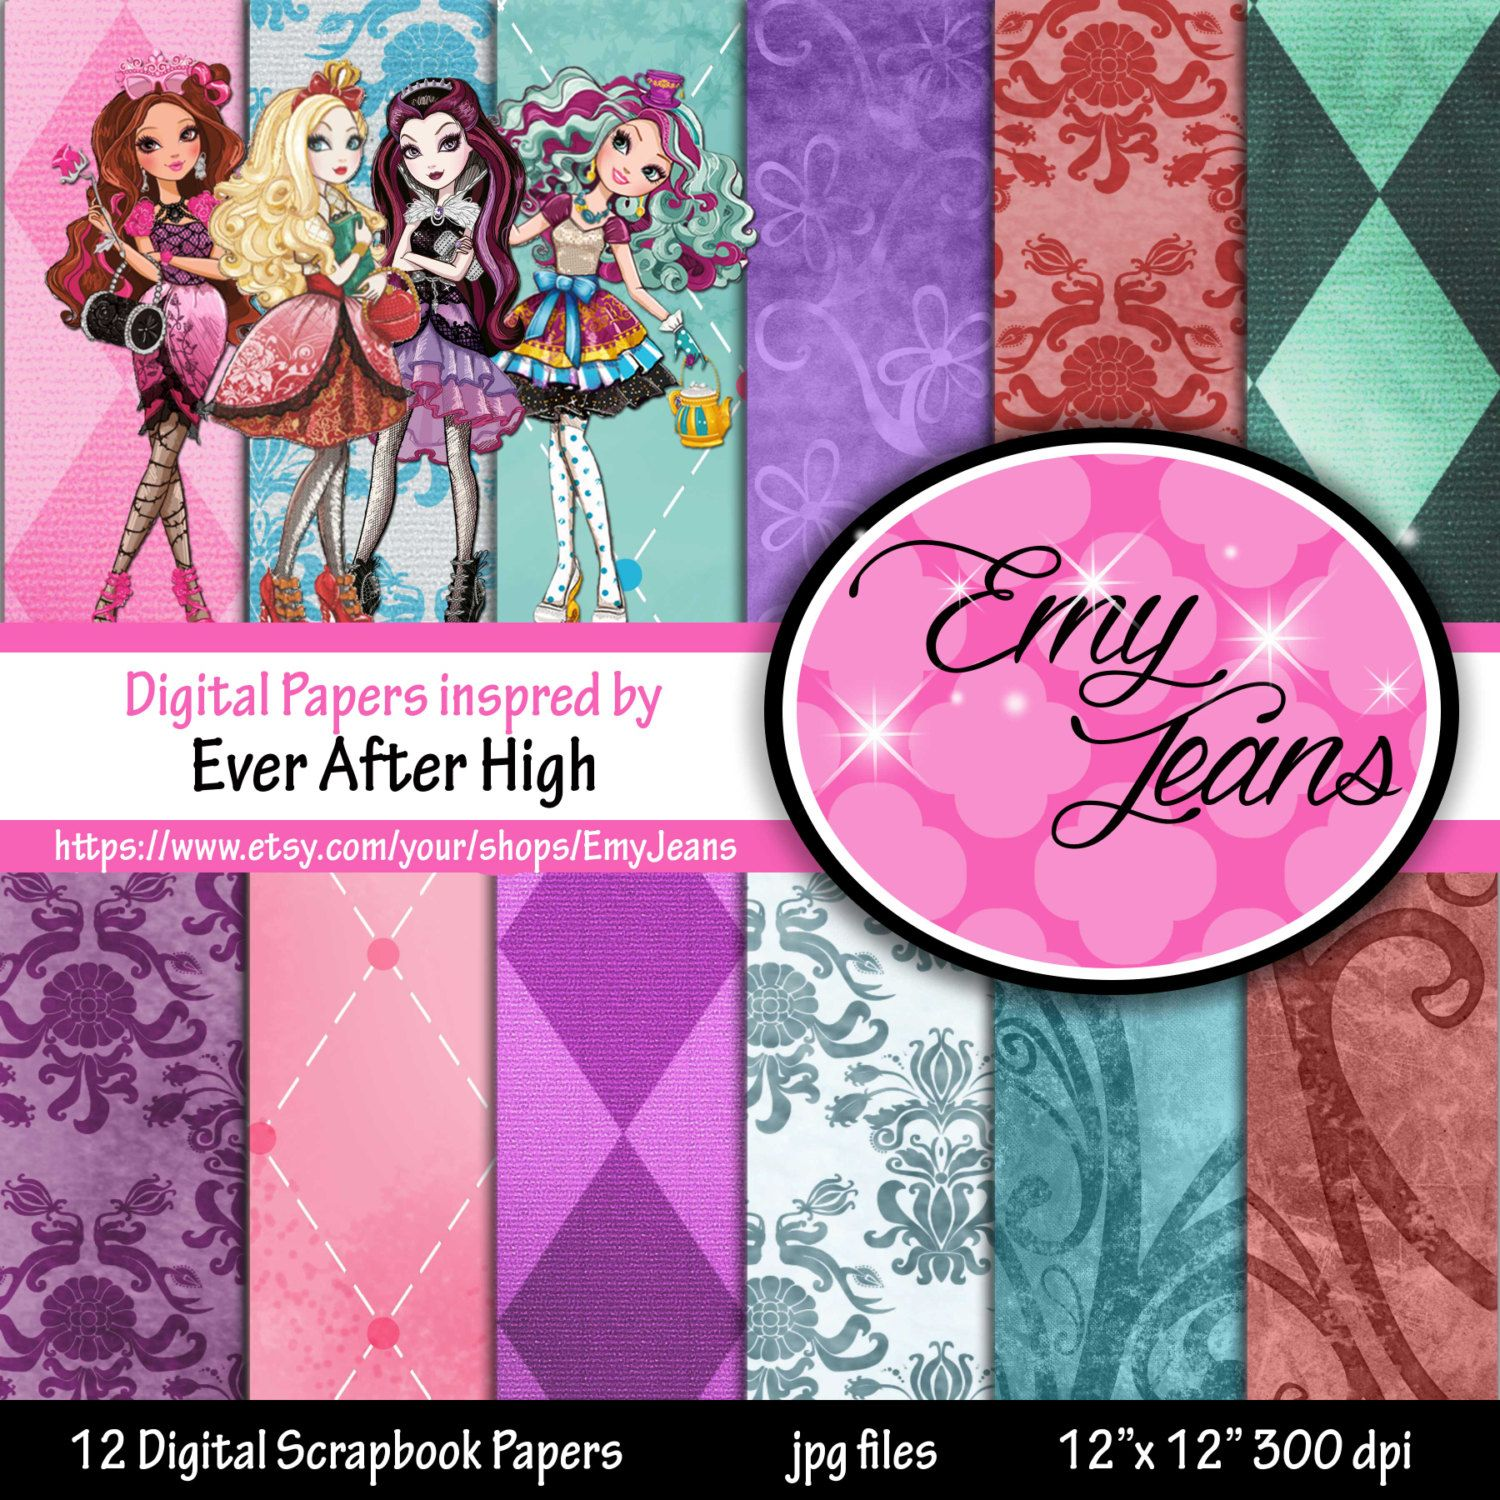 Scrapbook paper dollhouse wallpaper - Digital Paper Ever After High Background Wallpapers By Scrapbooking